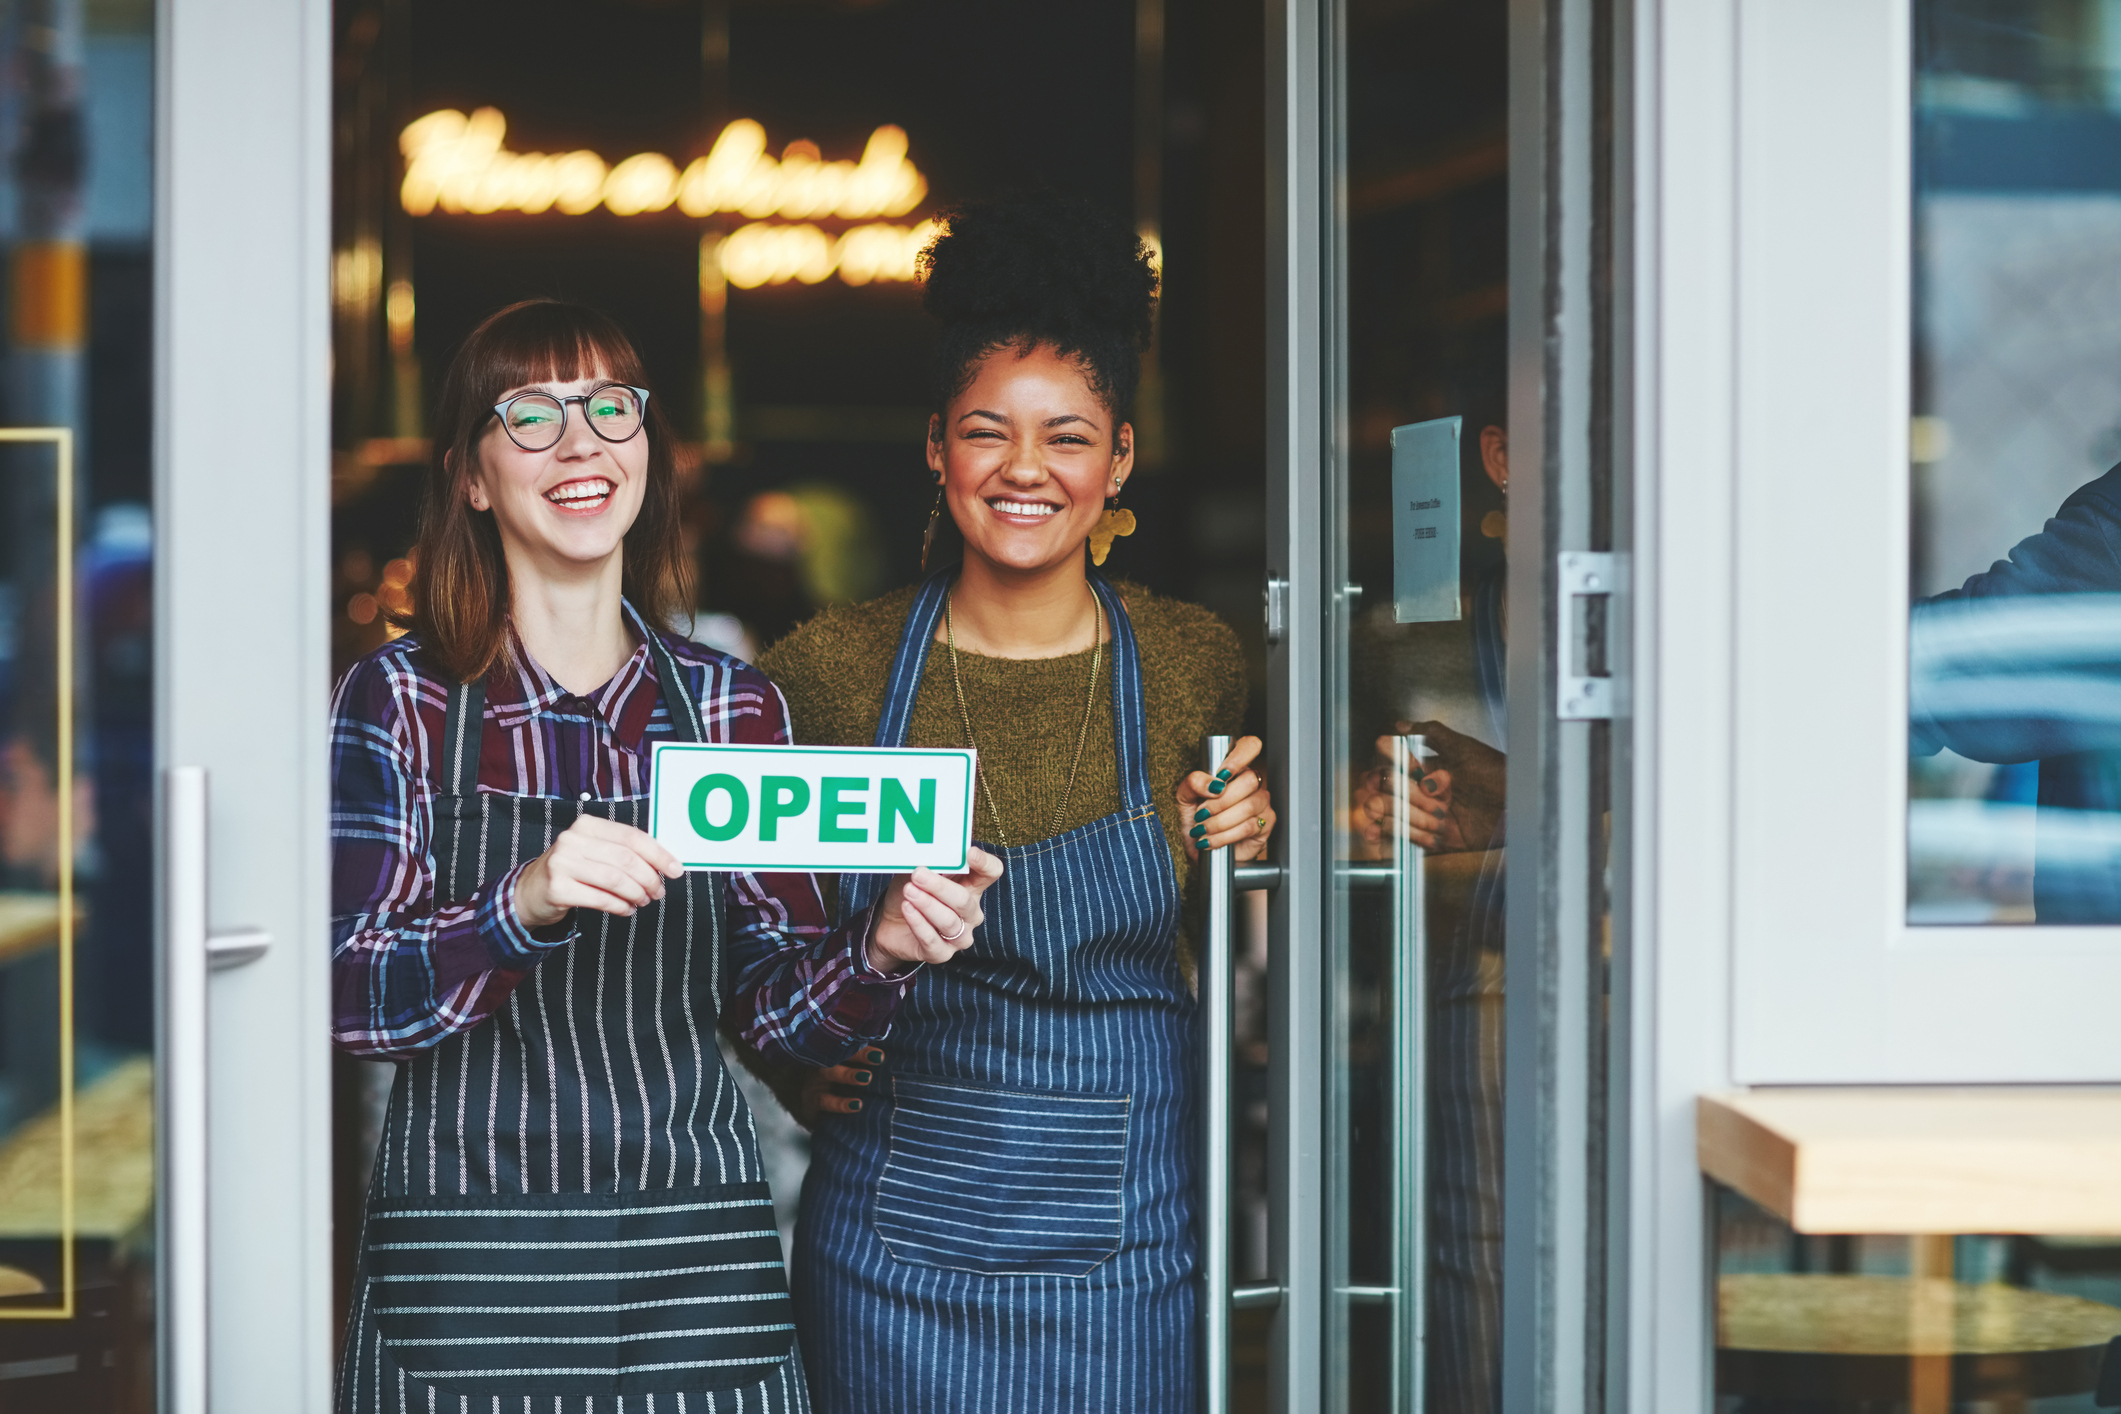 Do You Need to Refocus Your Small Business?